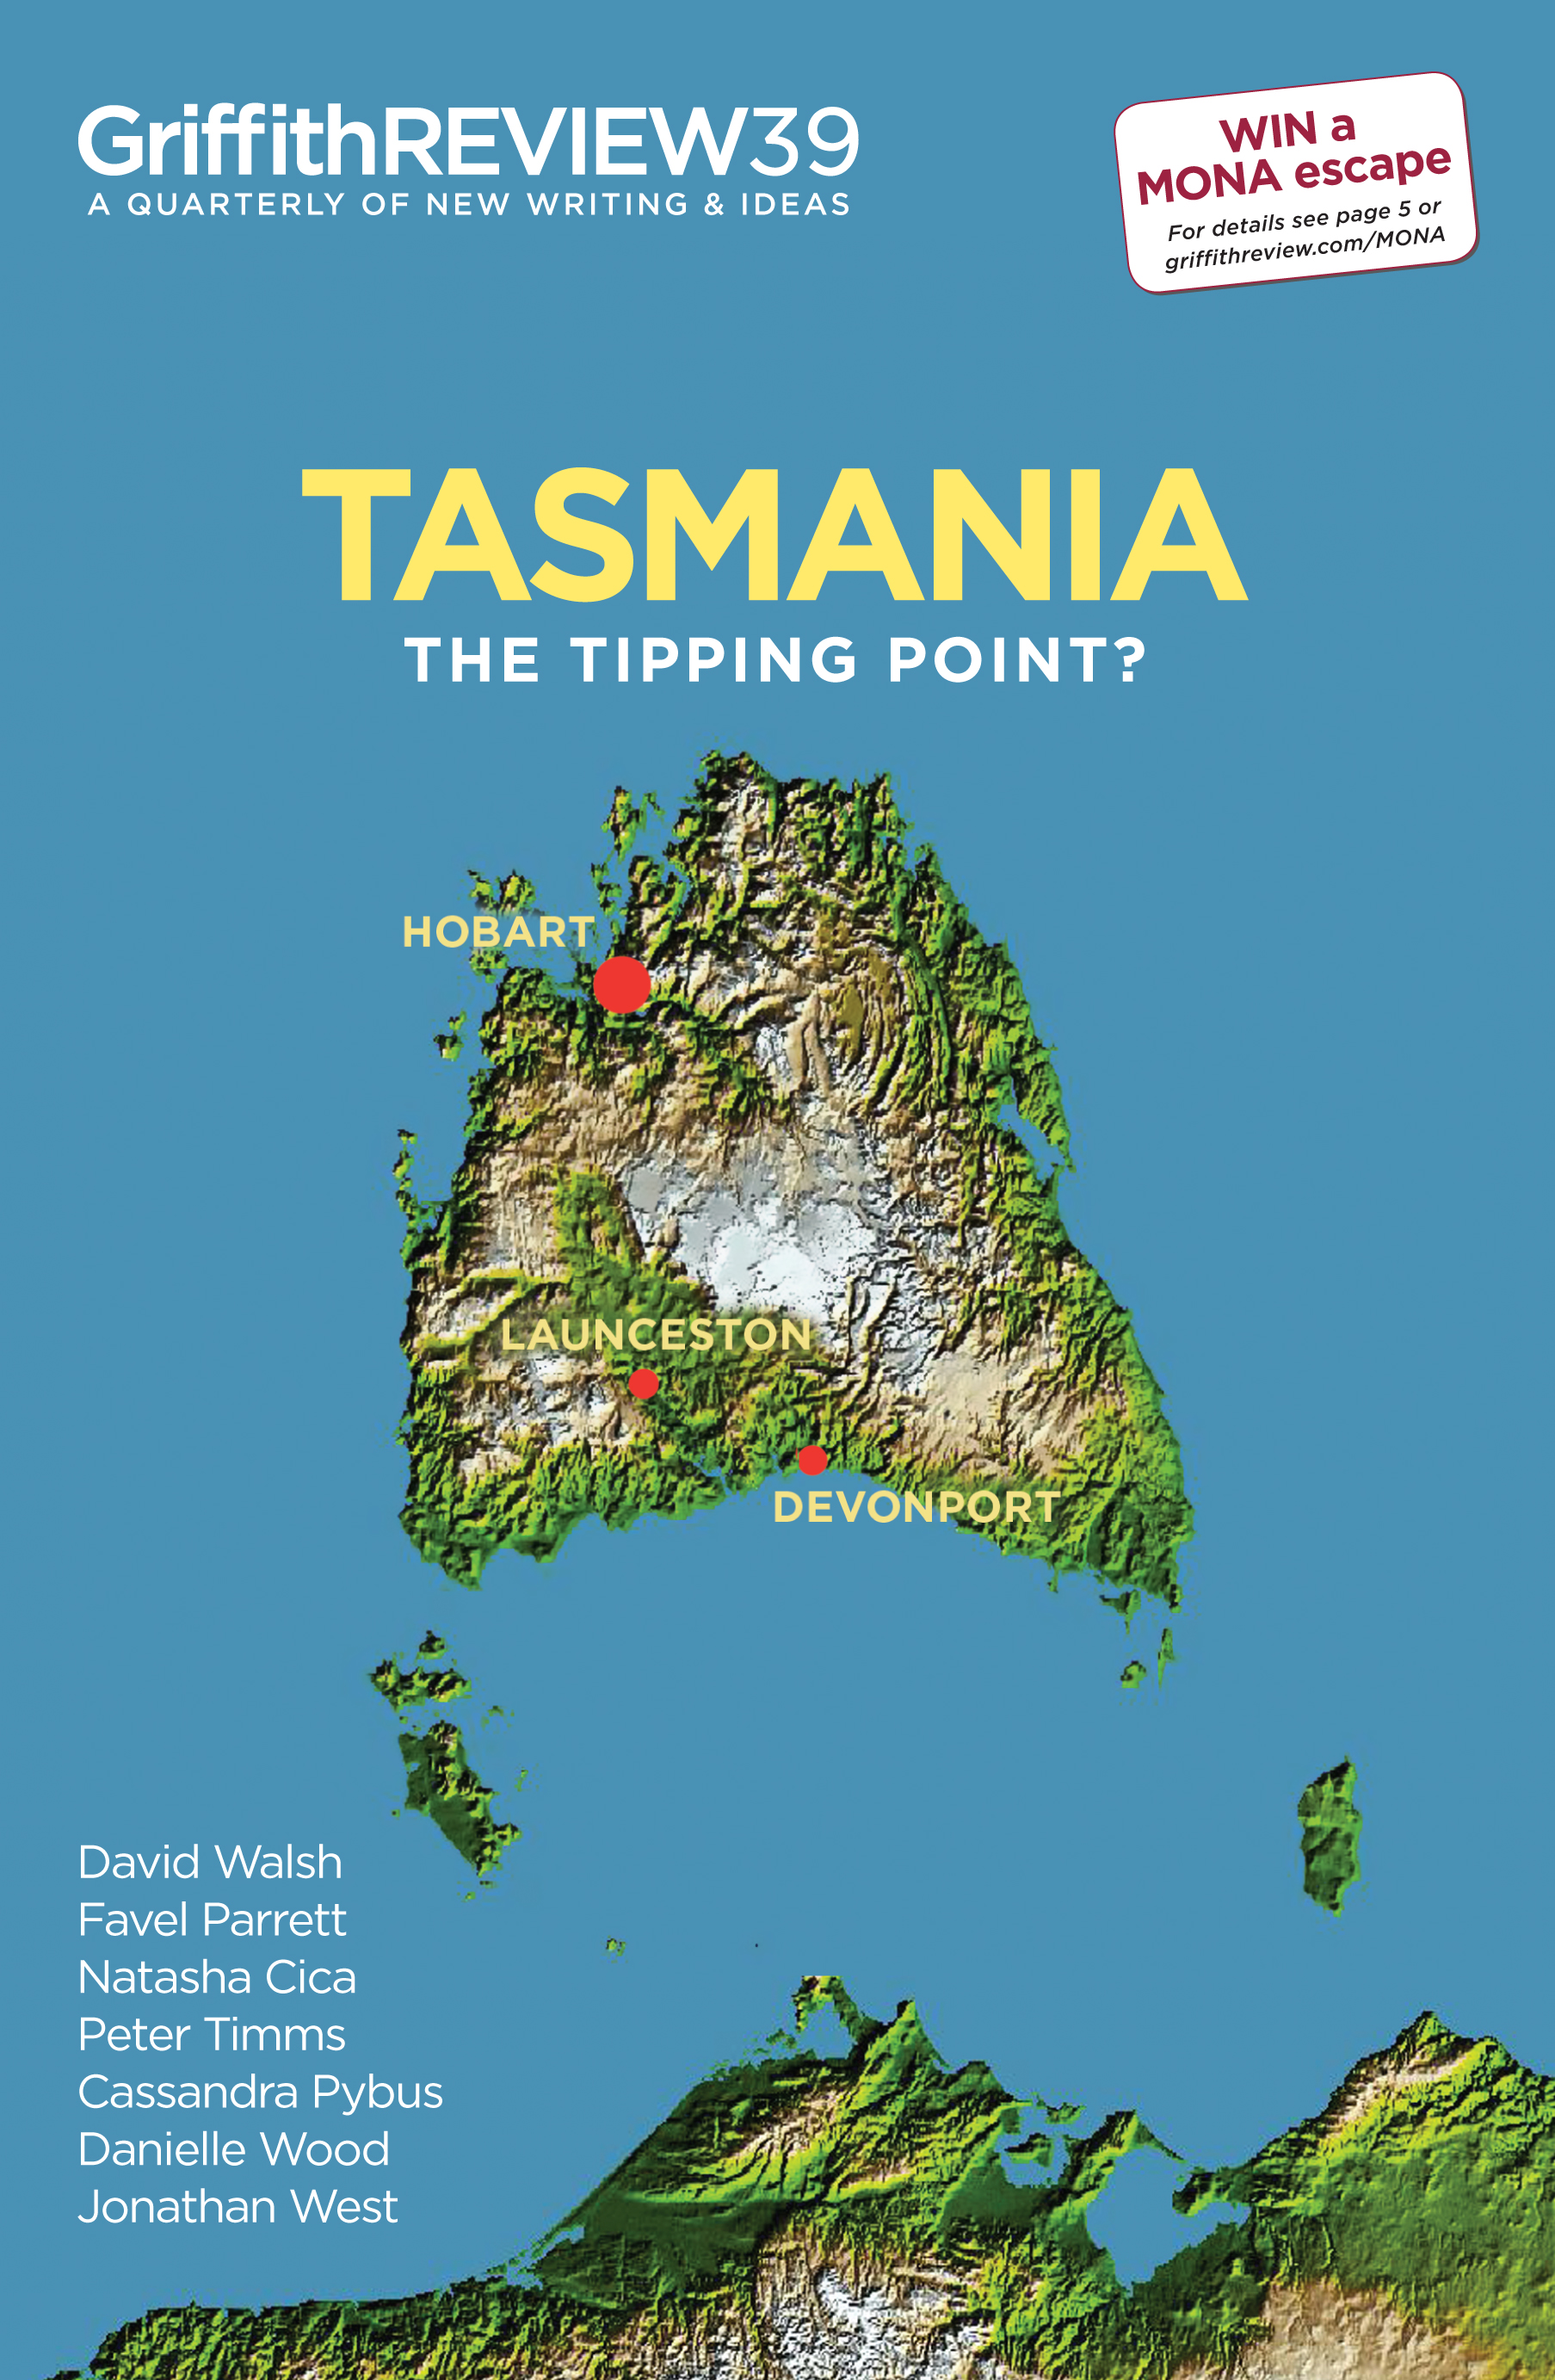 griffith review tasmania the tipping point book by julianne share this booksharehigh resolution coverpicturepreview